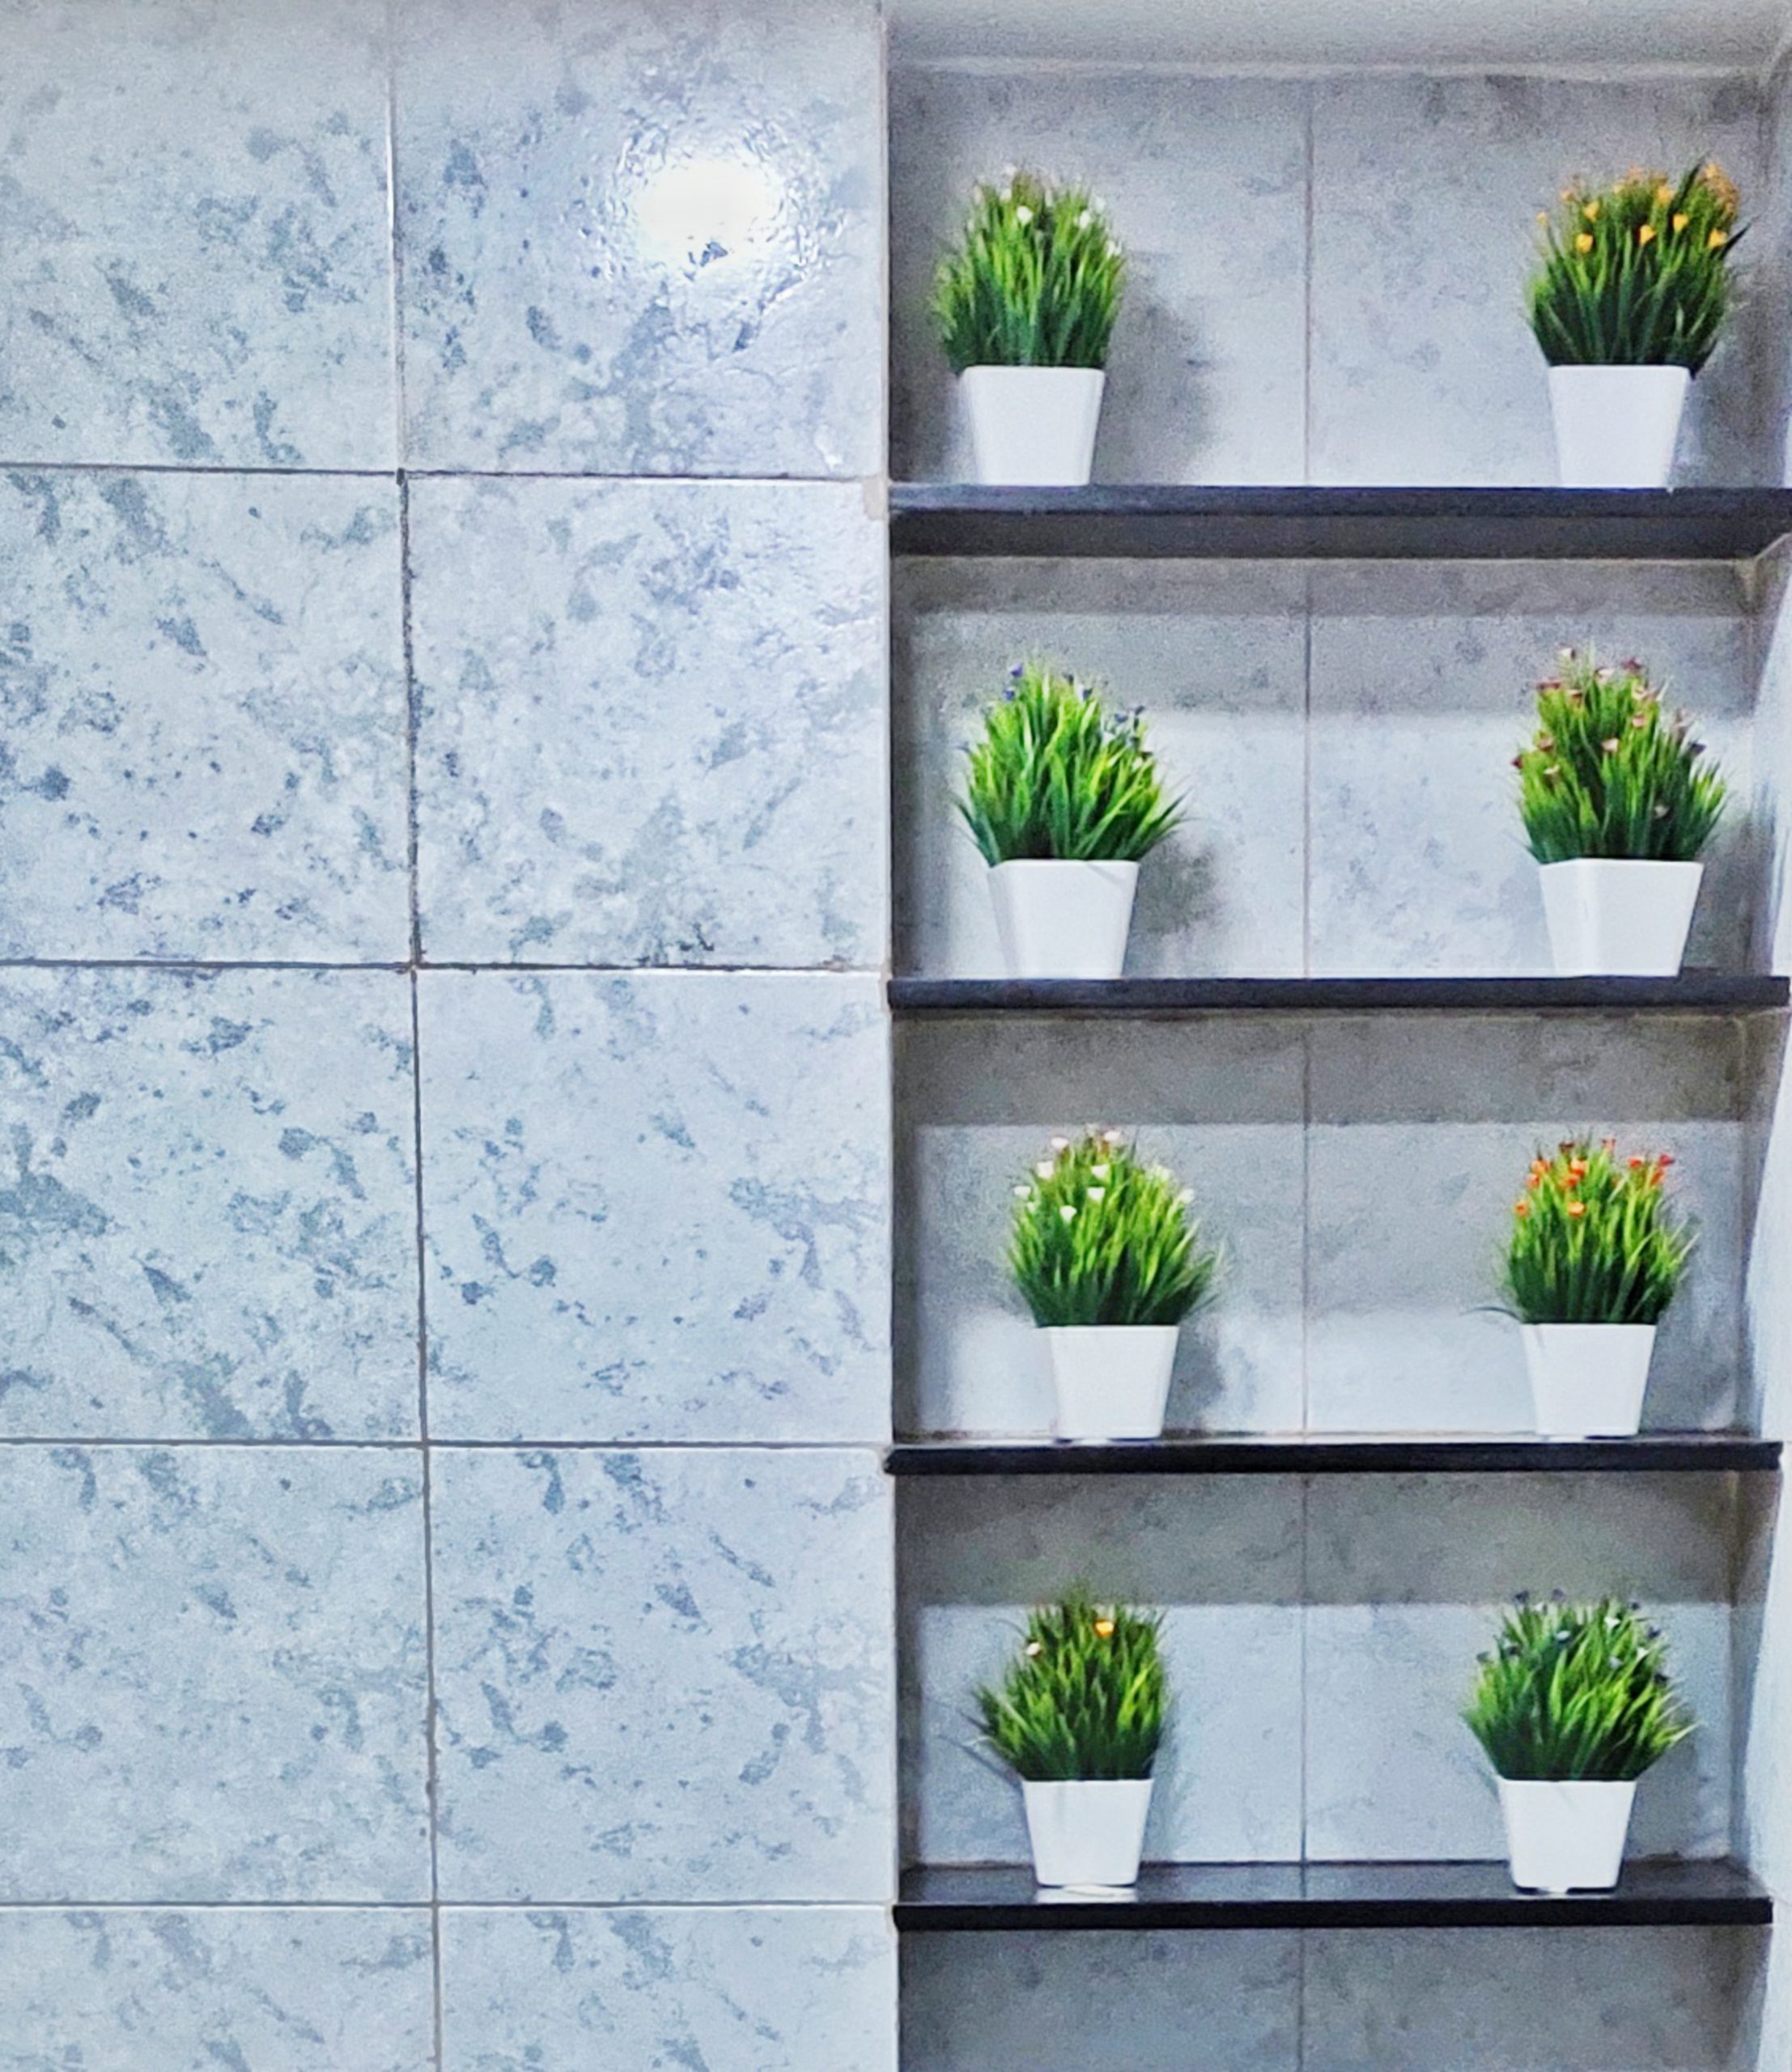 Small plant pots in a bathroom